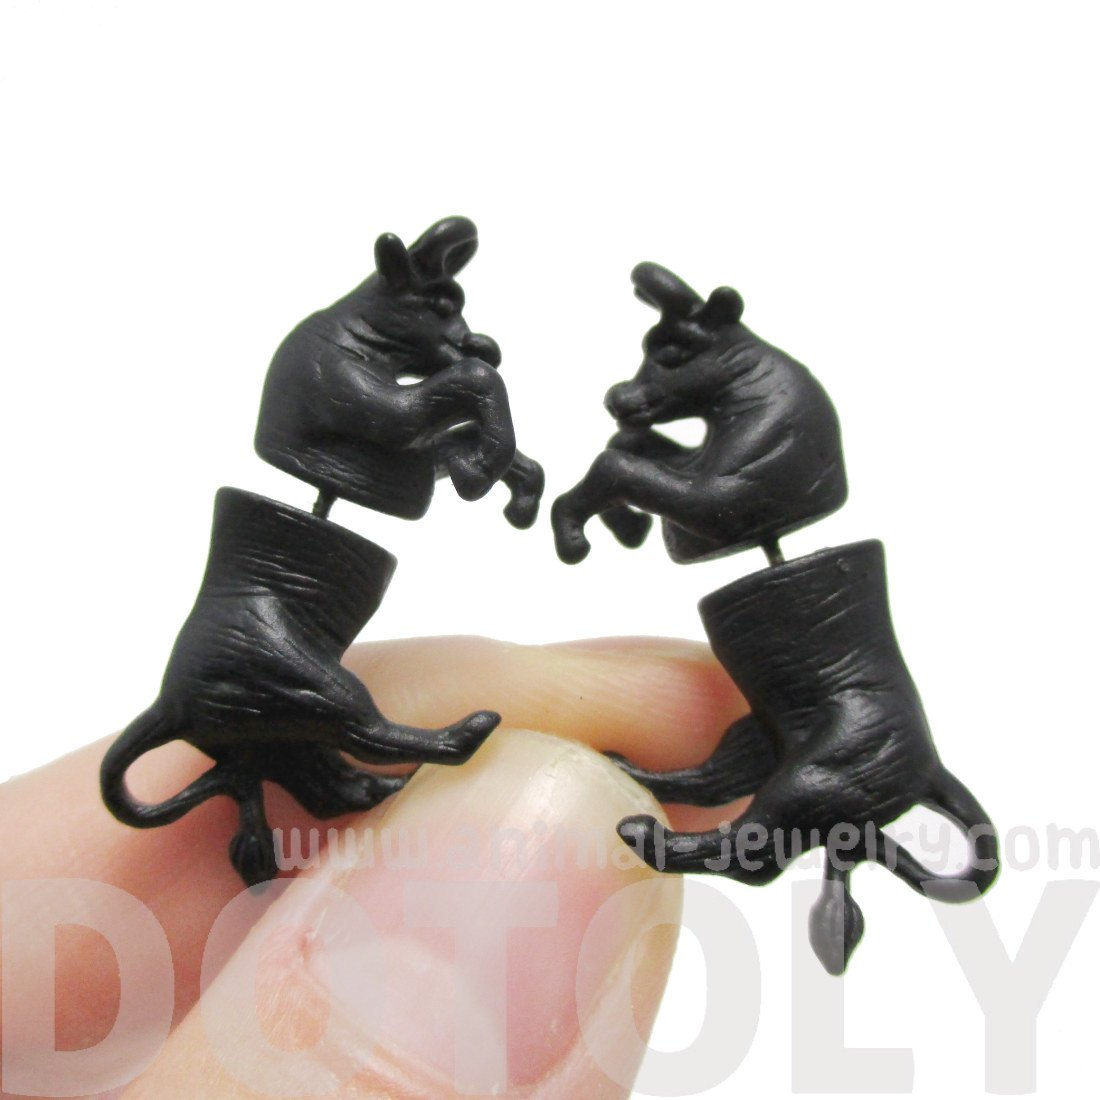 Cow Bull Shaped Animal Front and Back Earrings in Black